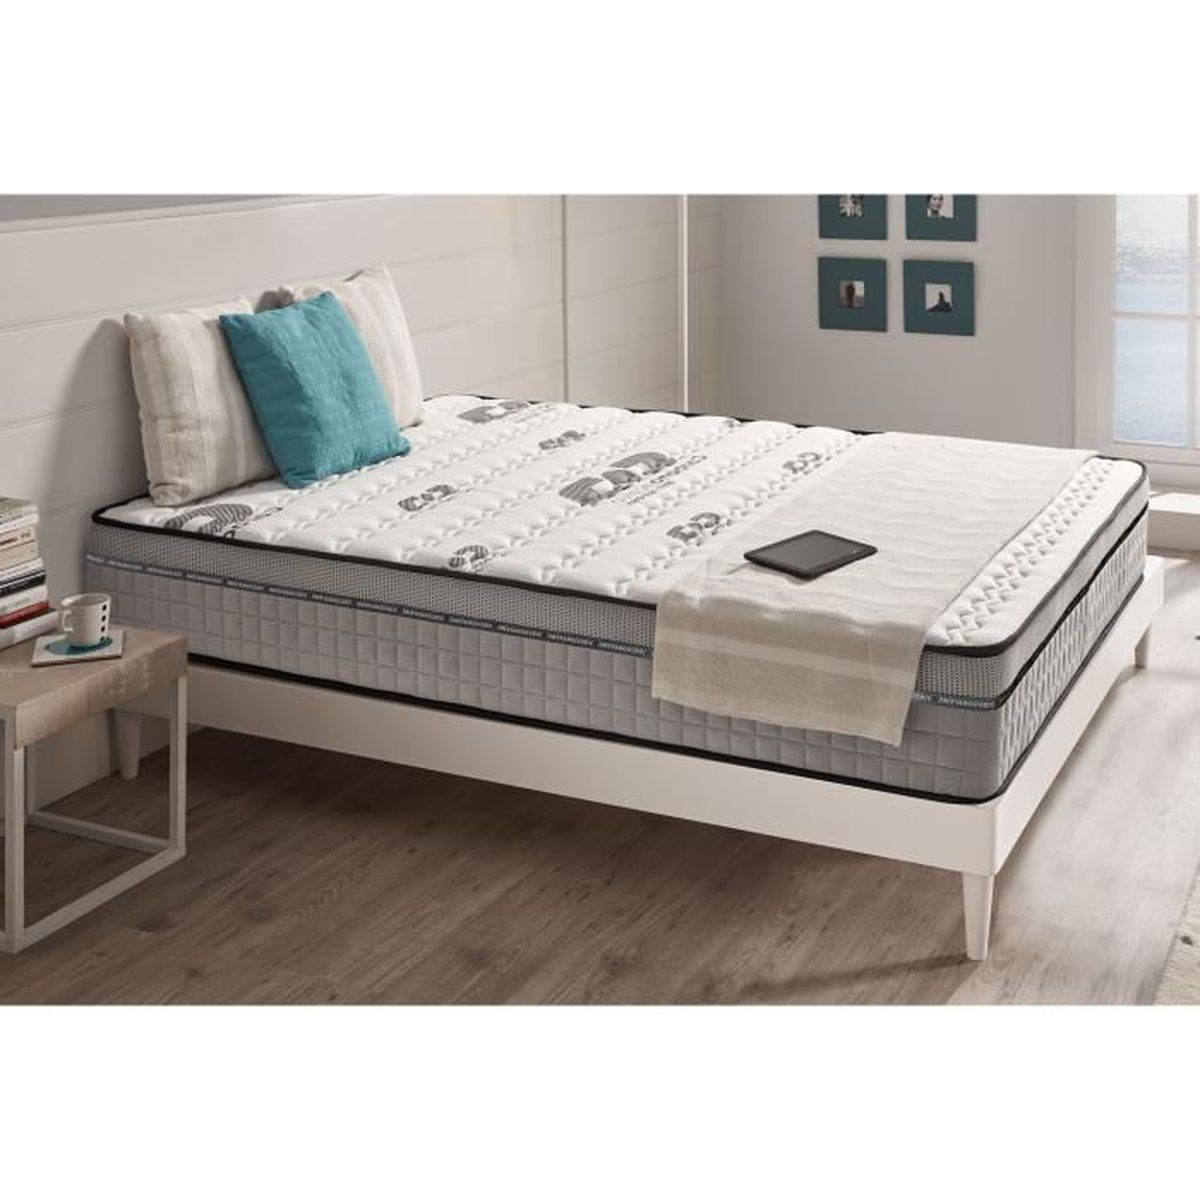 matelas 90x190 cm anti stress maxi carbone m moire de forme latex bio memory achat vente. Black Bedroom Furniture Sets. Home Design Ideas